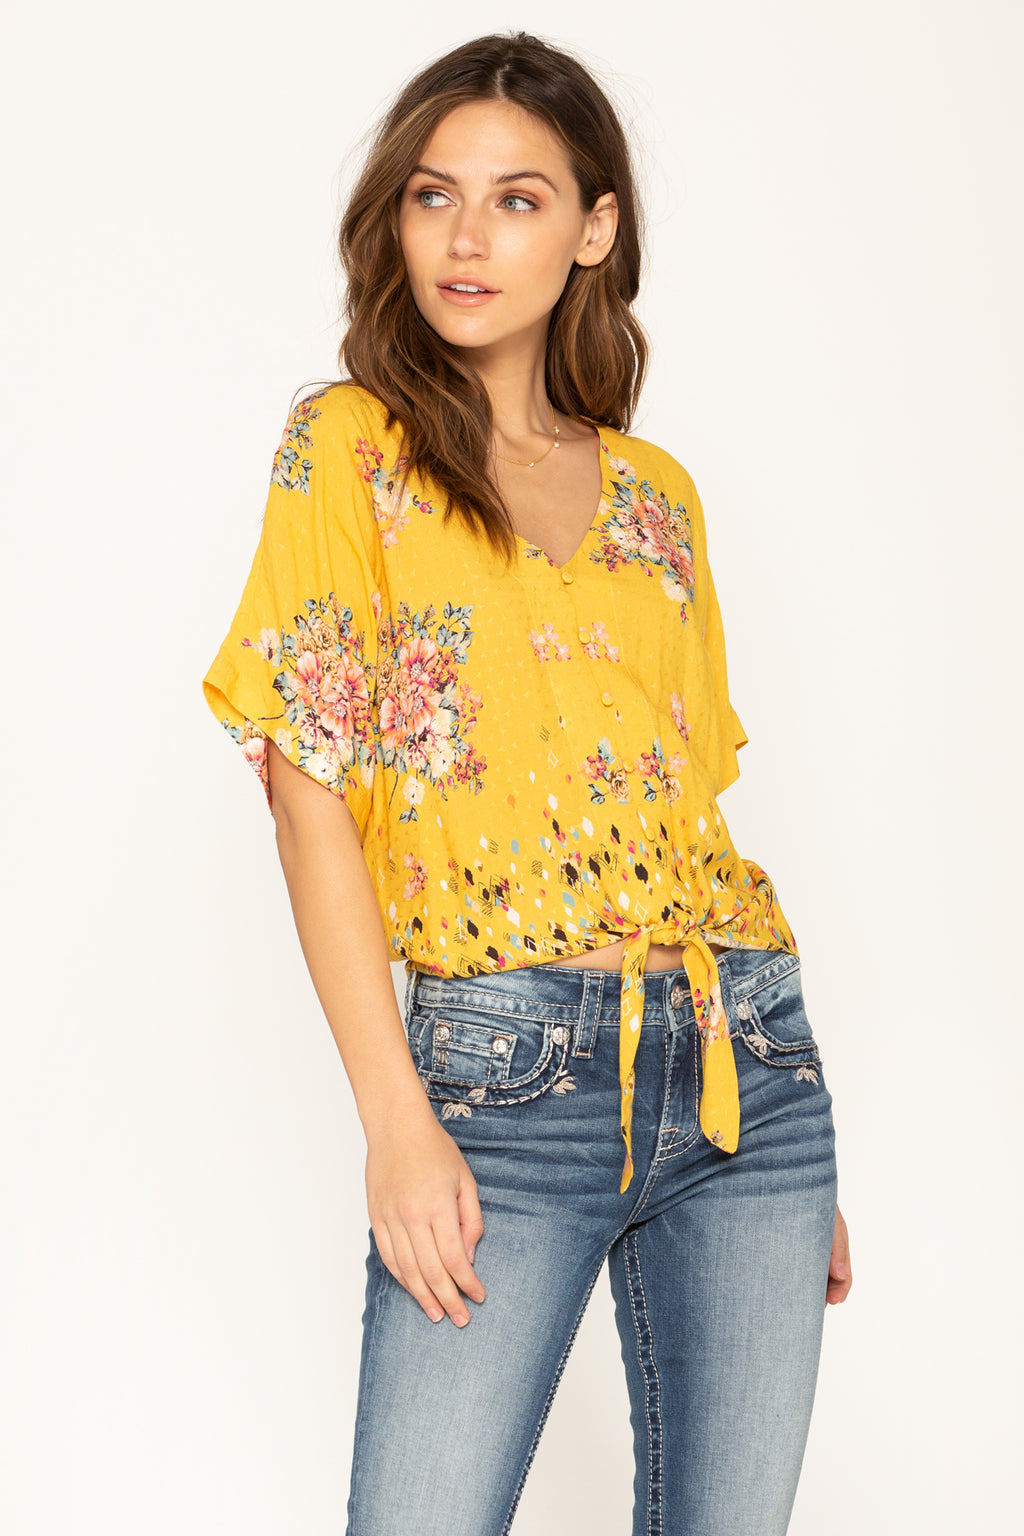 bfb4892849328 Women s Tops - Blouses - Miss Me